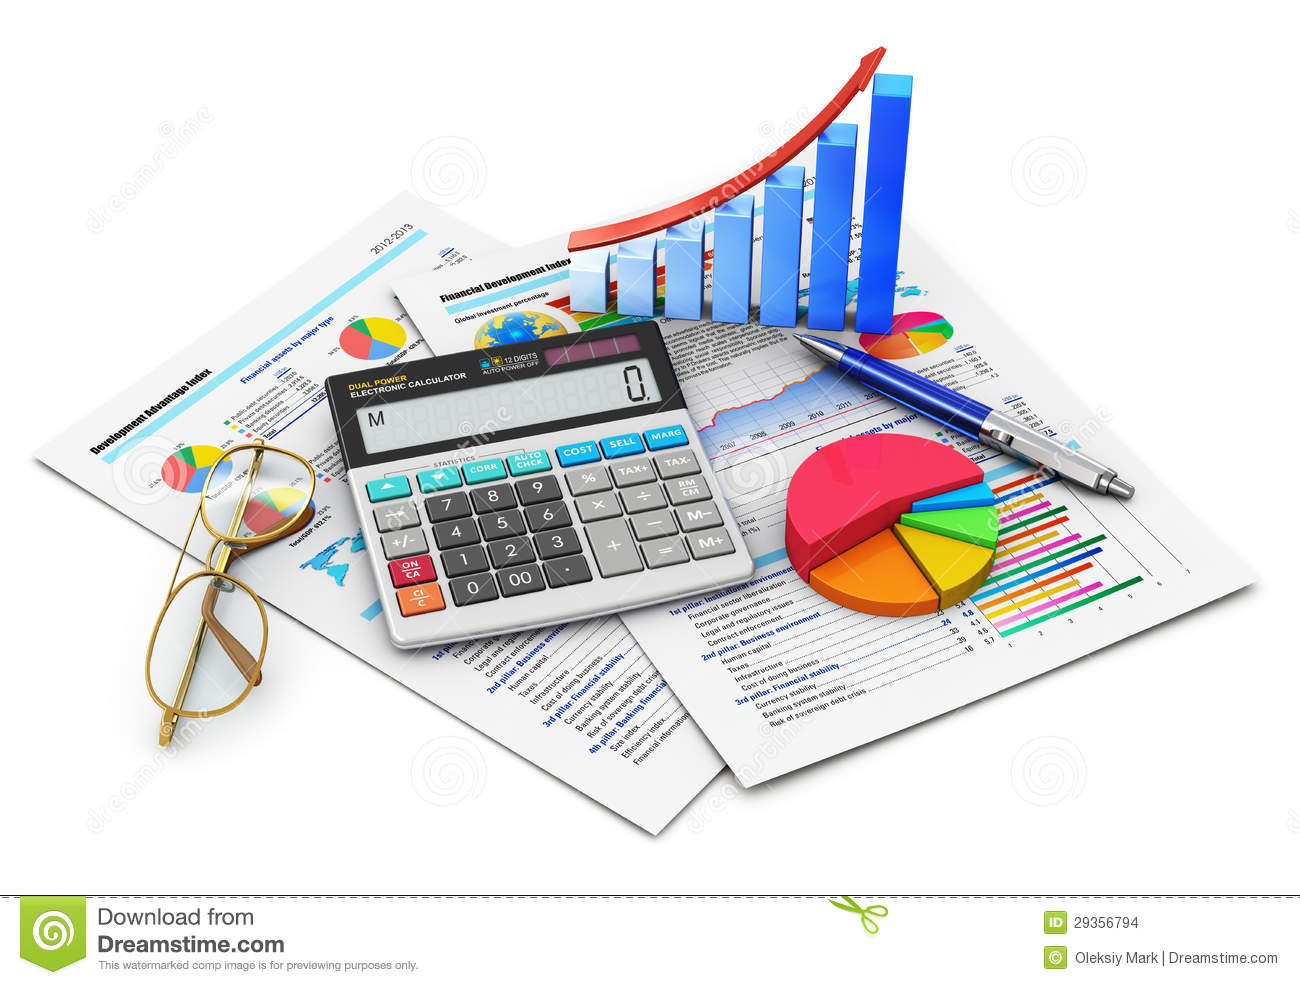 Accounting and finance clipart.